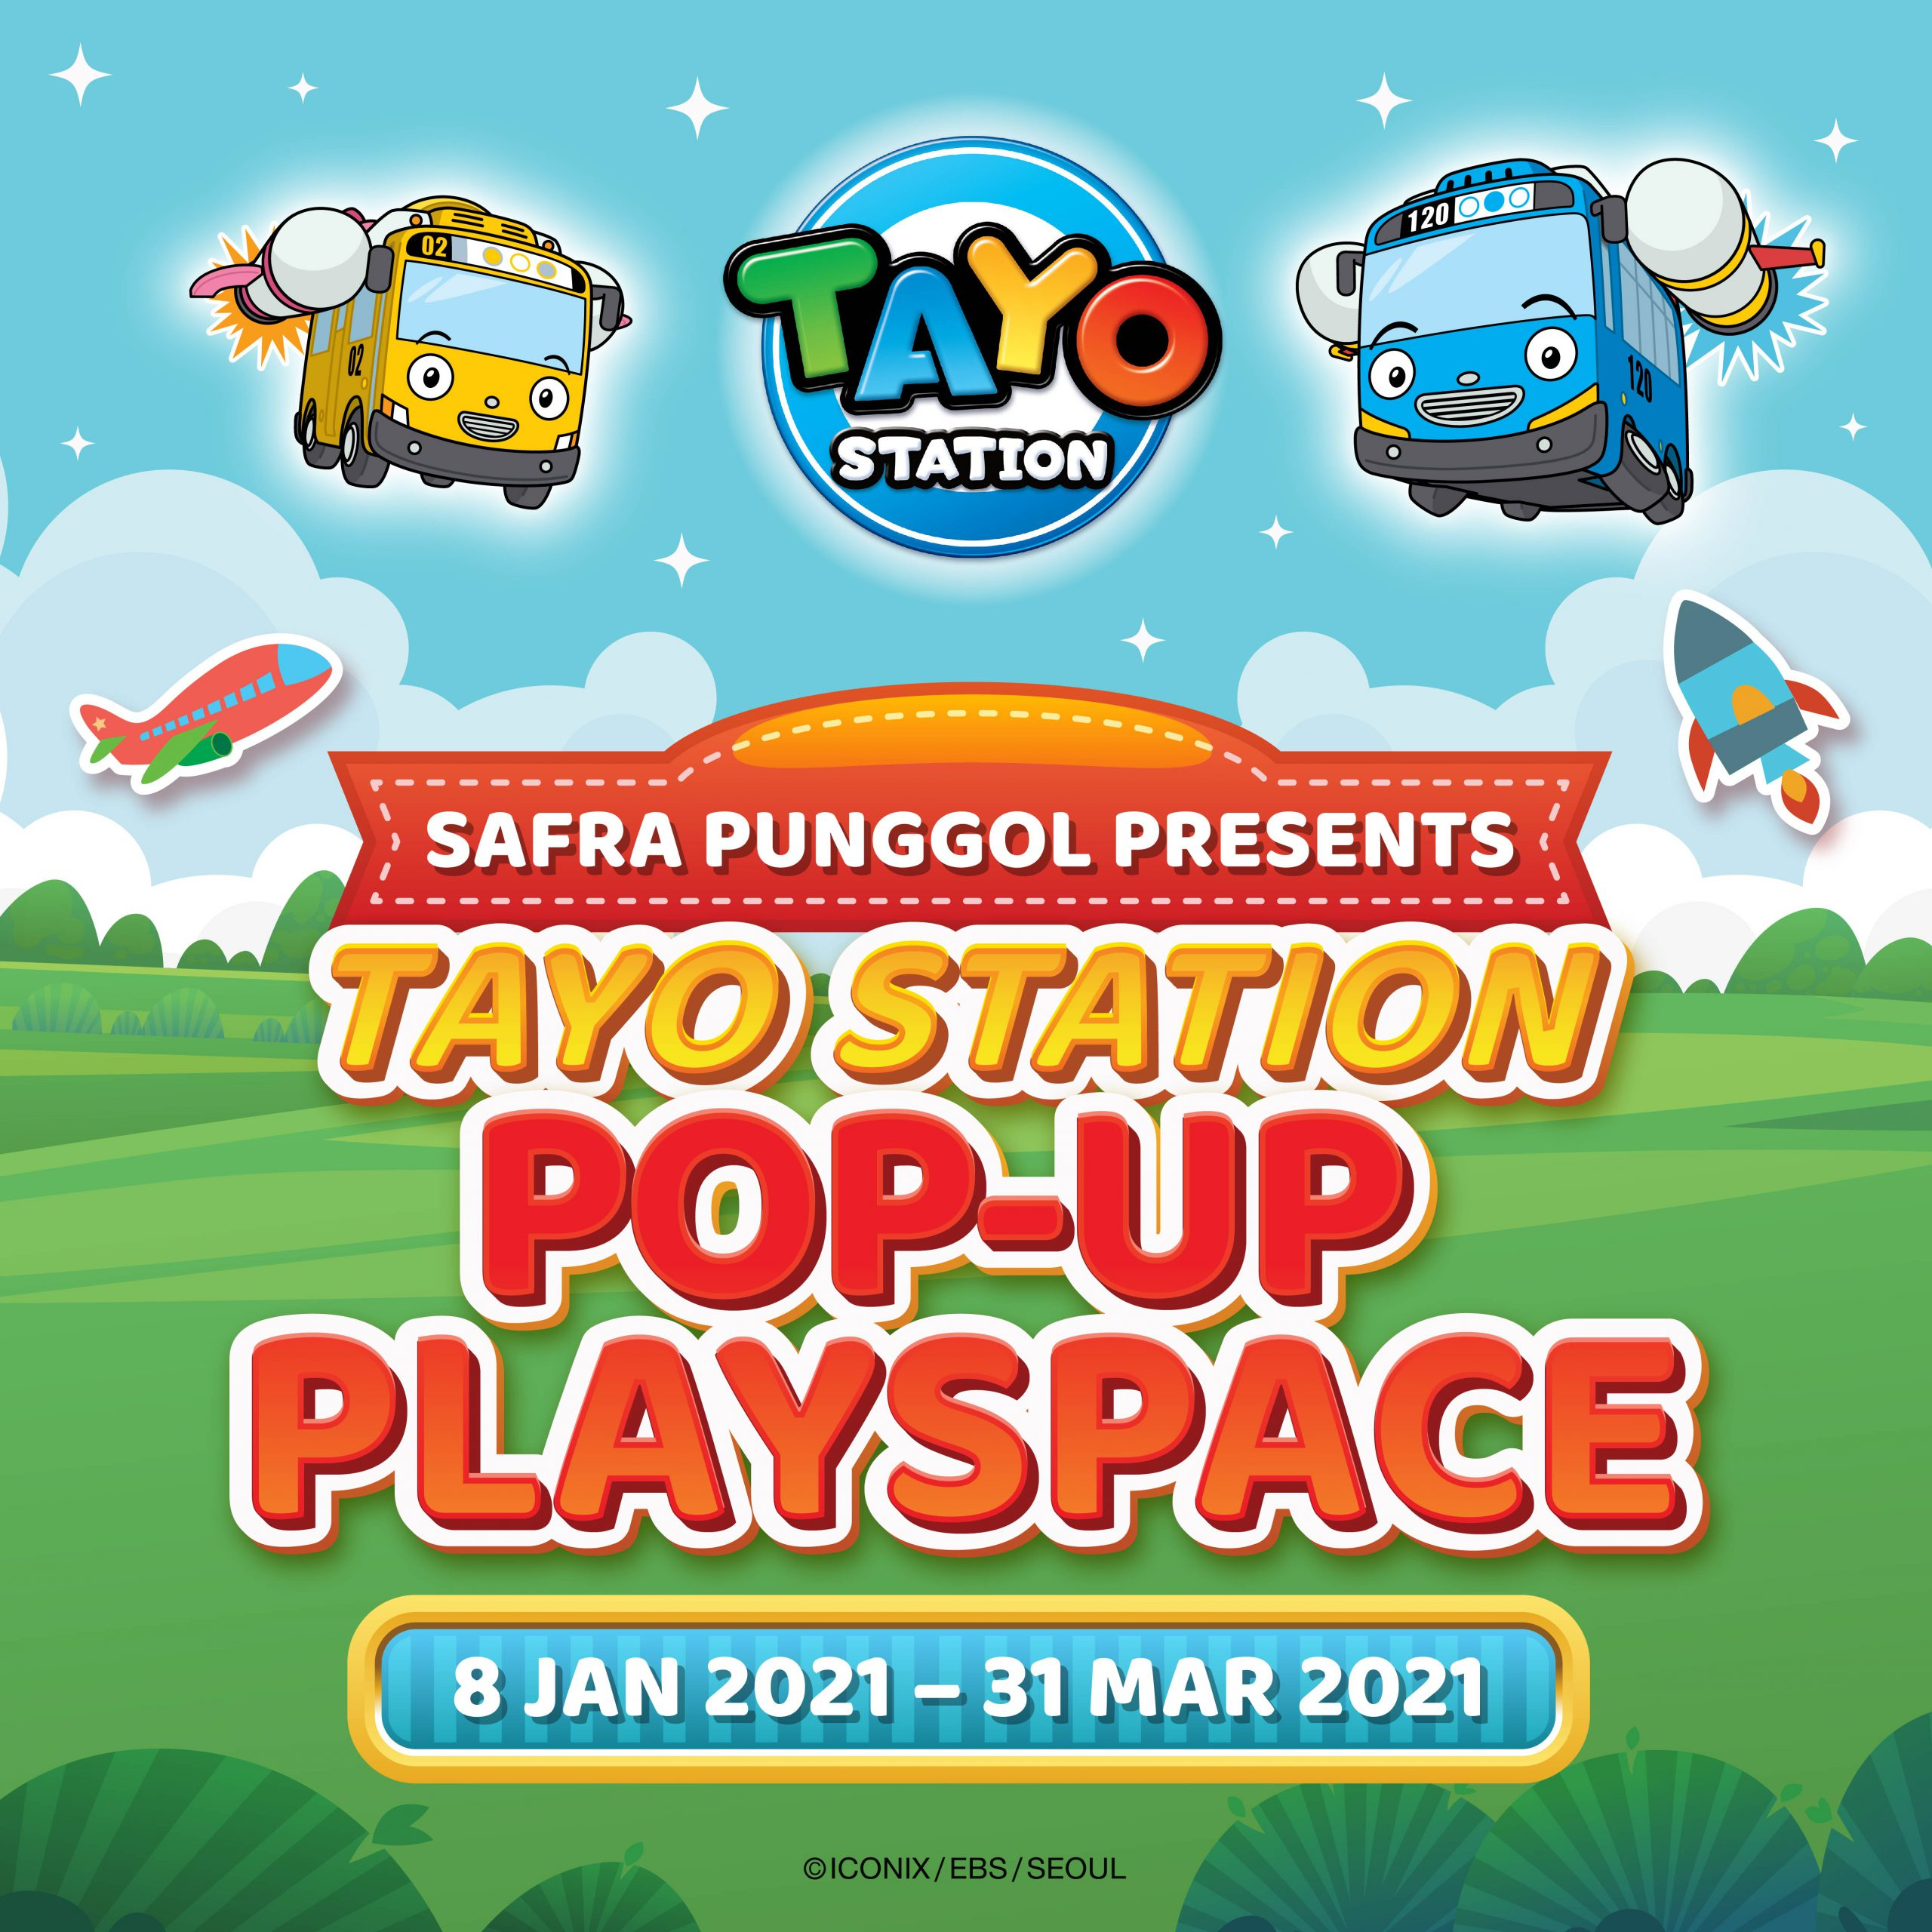 SAFRA Punggol Presents Tayo Station Pop-up Playspace